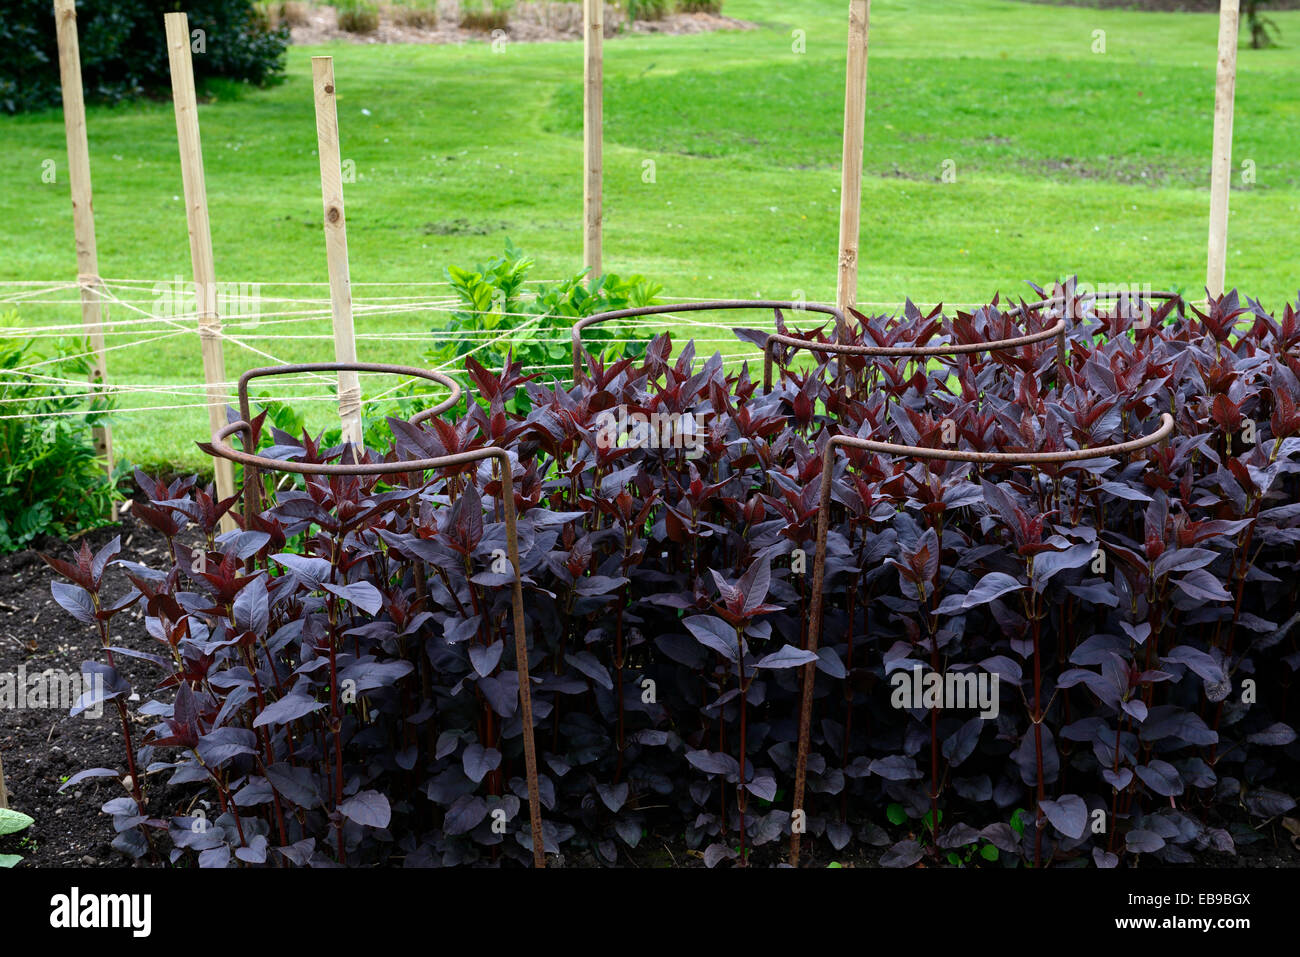 metal ring support supporting new growth in place garden gardening planting scheme RM Floral - Stock Image